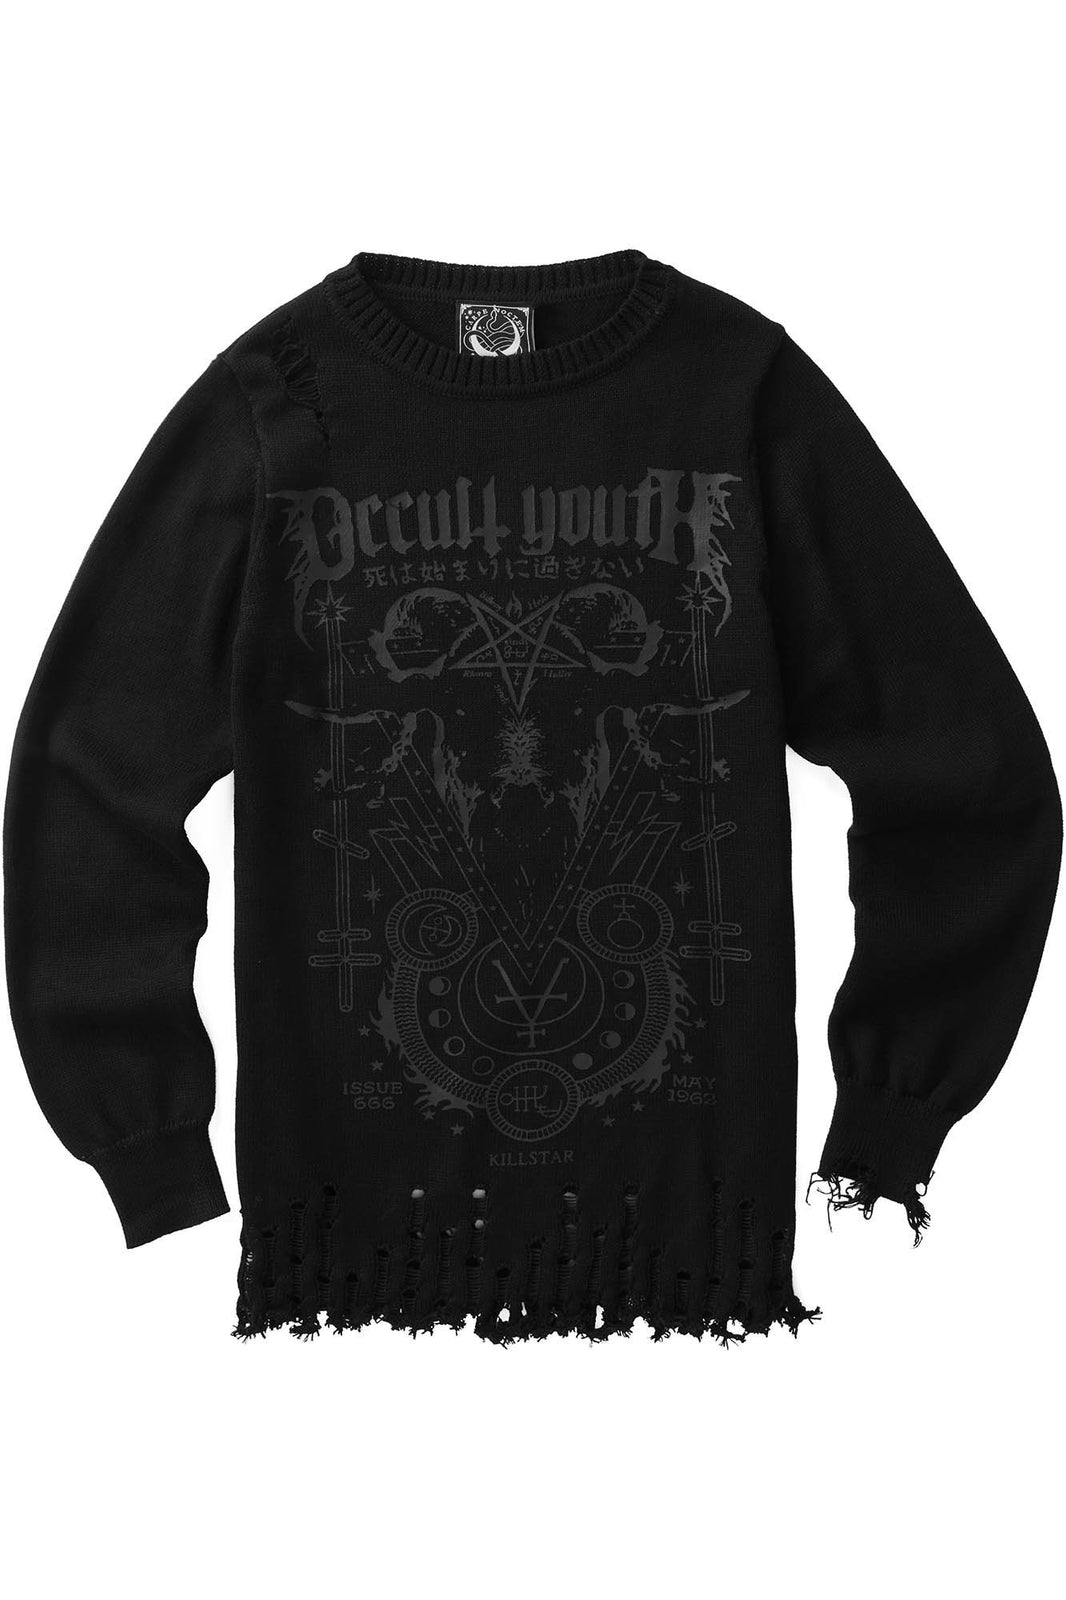 Occult Youth Knit Sweater